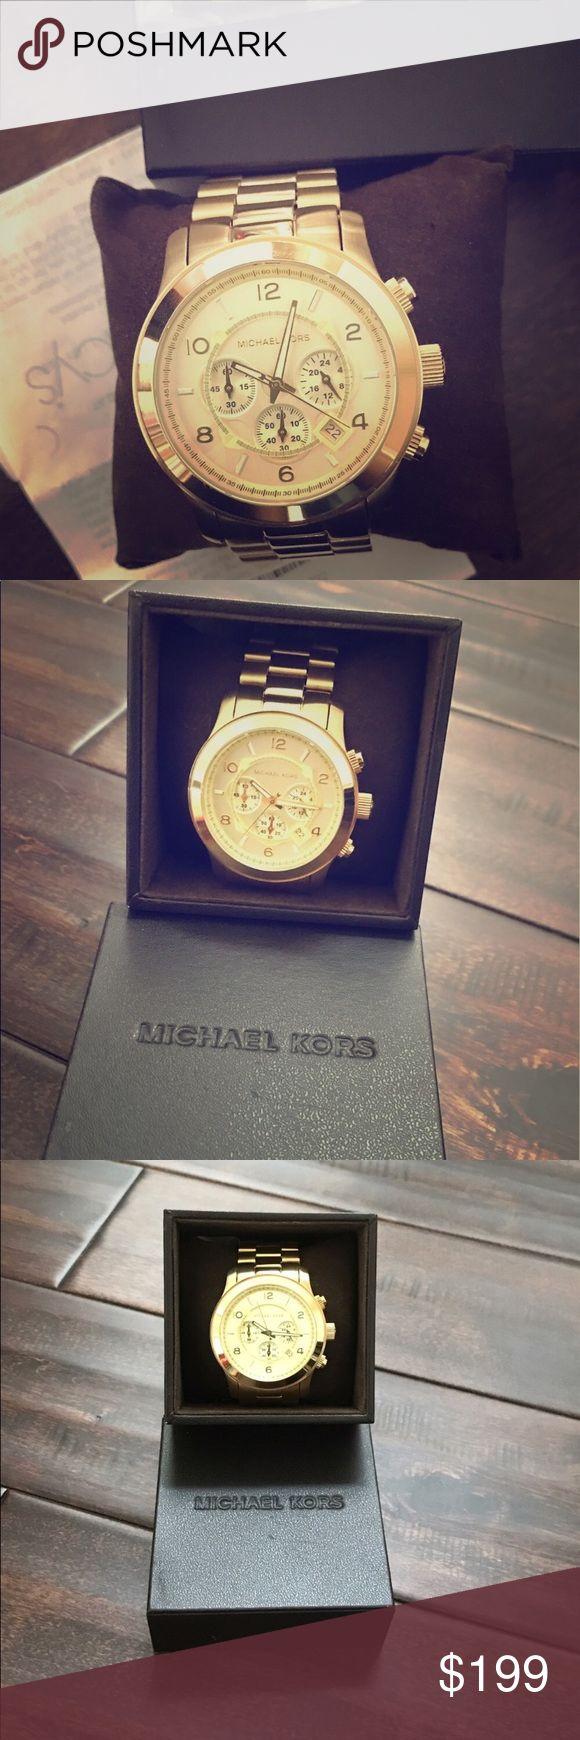 NWT Men's Michael Kors gold tone chronograph watch NWT Men's Michael Kors gold tone chronograph runway oversized watch. Perfect condition, brand new! Beautiful watch! Authentic. receipt shows purchase. MK8077 **This item is excluded from bundles** Michael Kors Accessories Watches